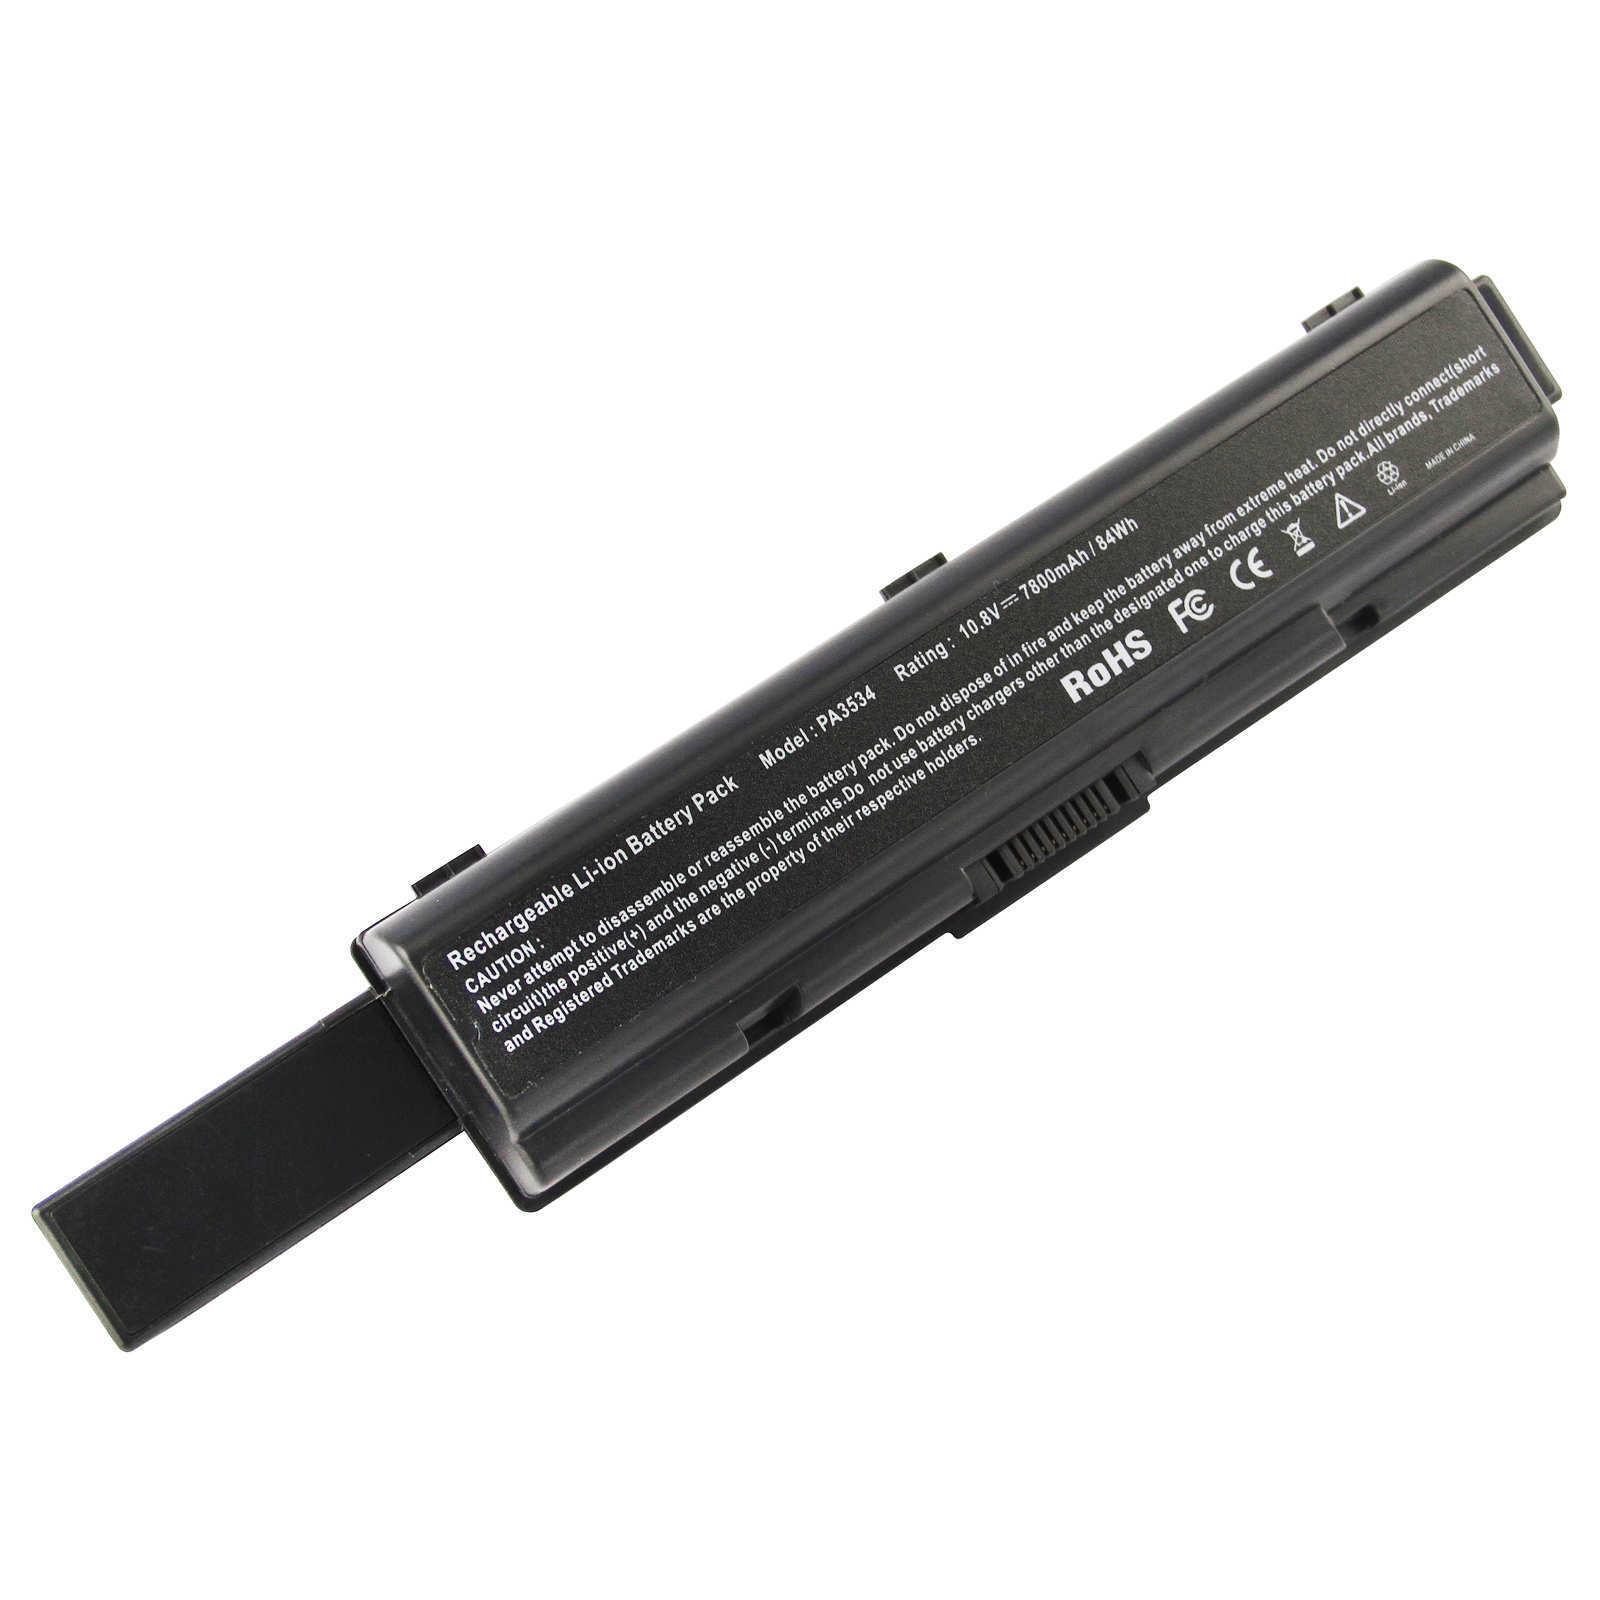 Replacement Toshiba Satellite A200-SC3 Battery